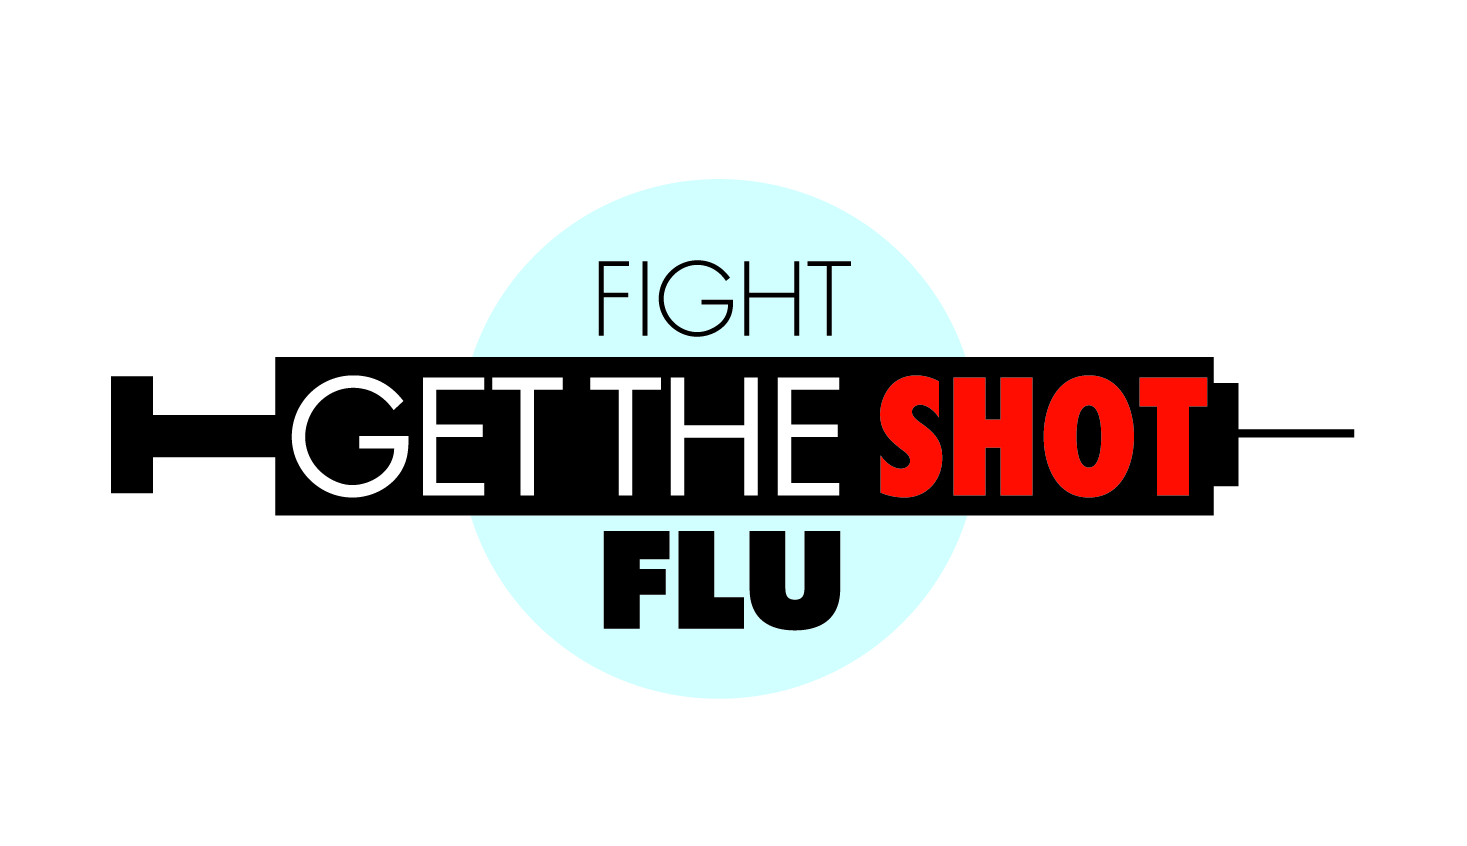 flu shot Flu vaccination why should people get vaccinated against the flu influenza is a serious disease that can lead to hospitalization and sometimes even death.